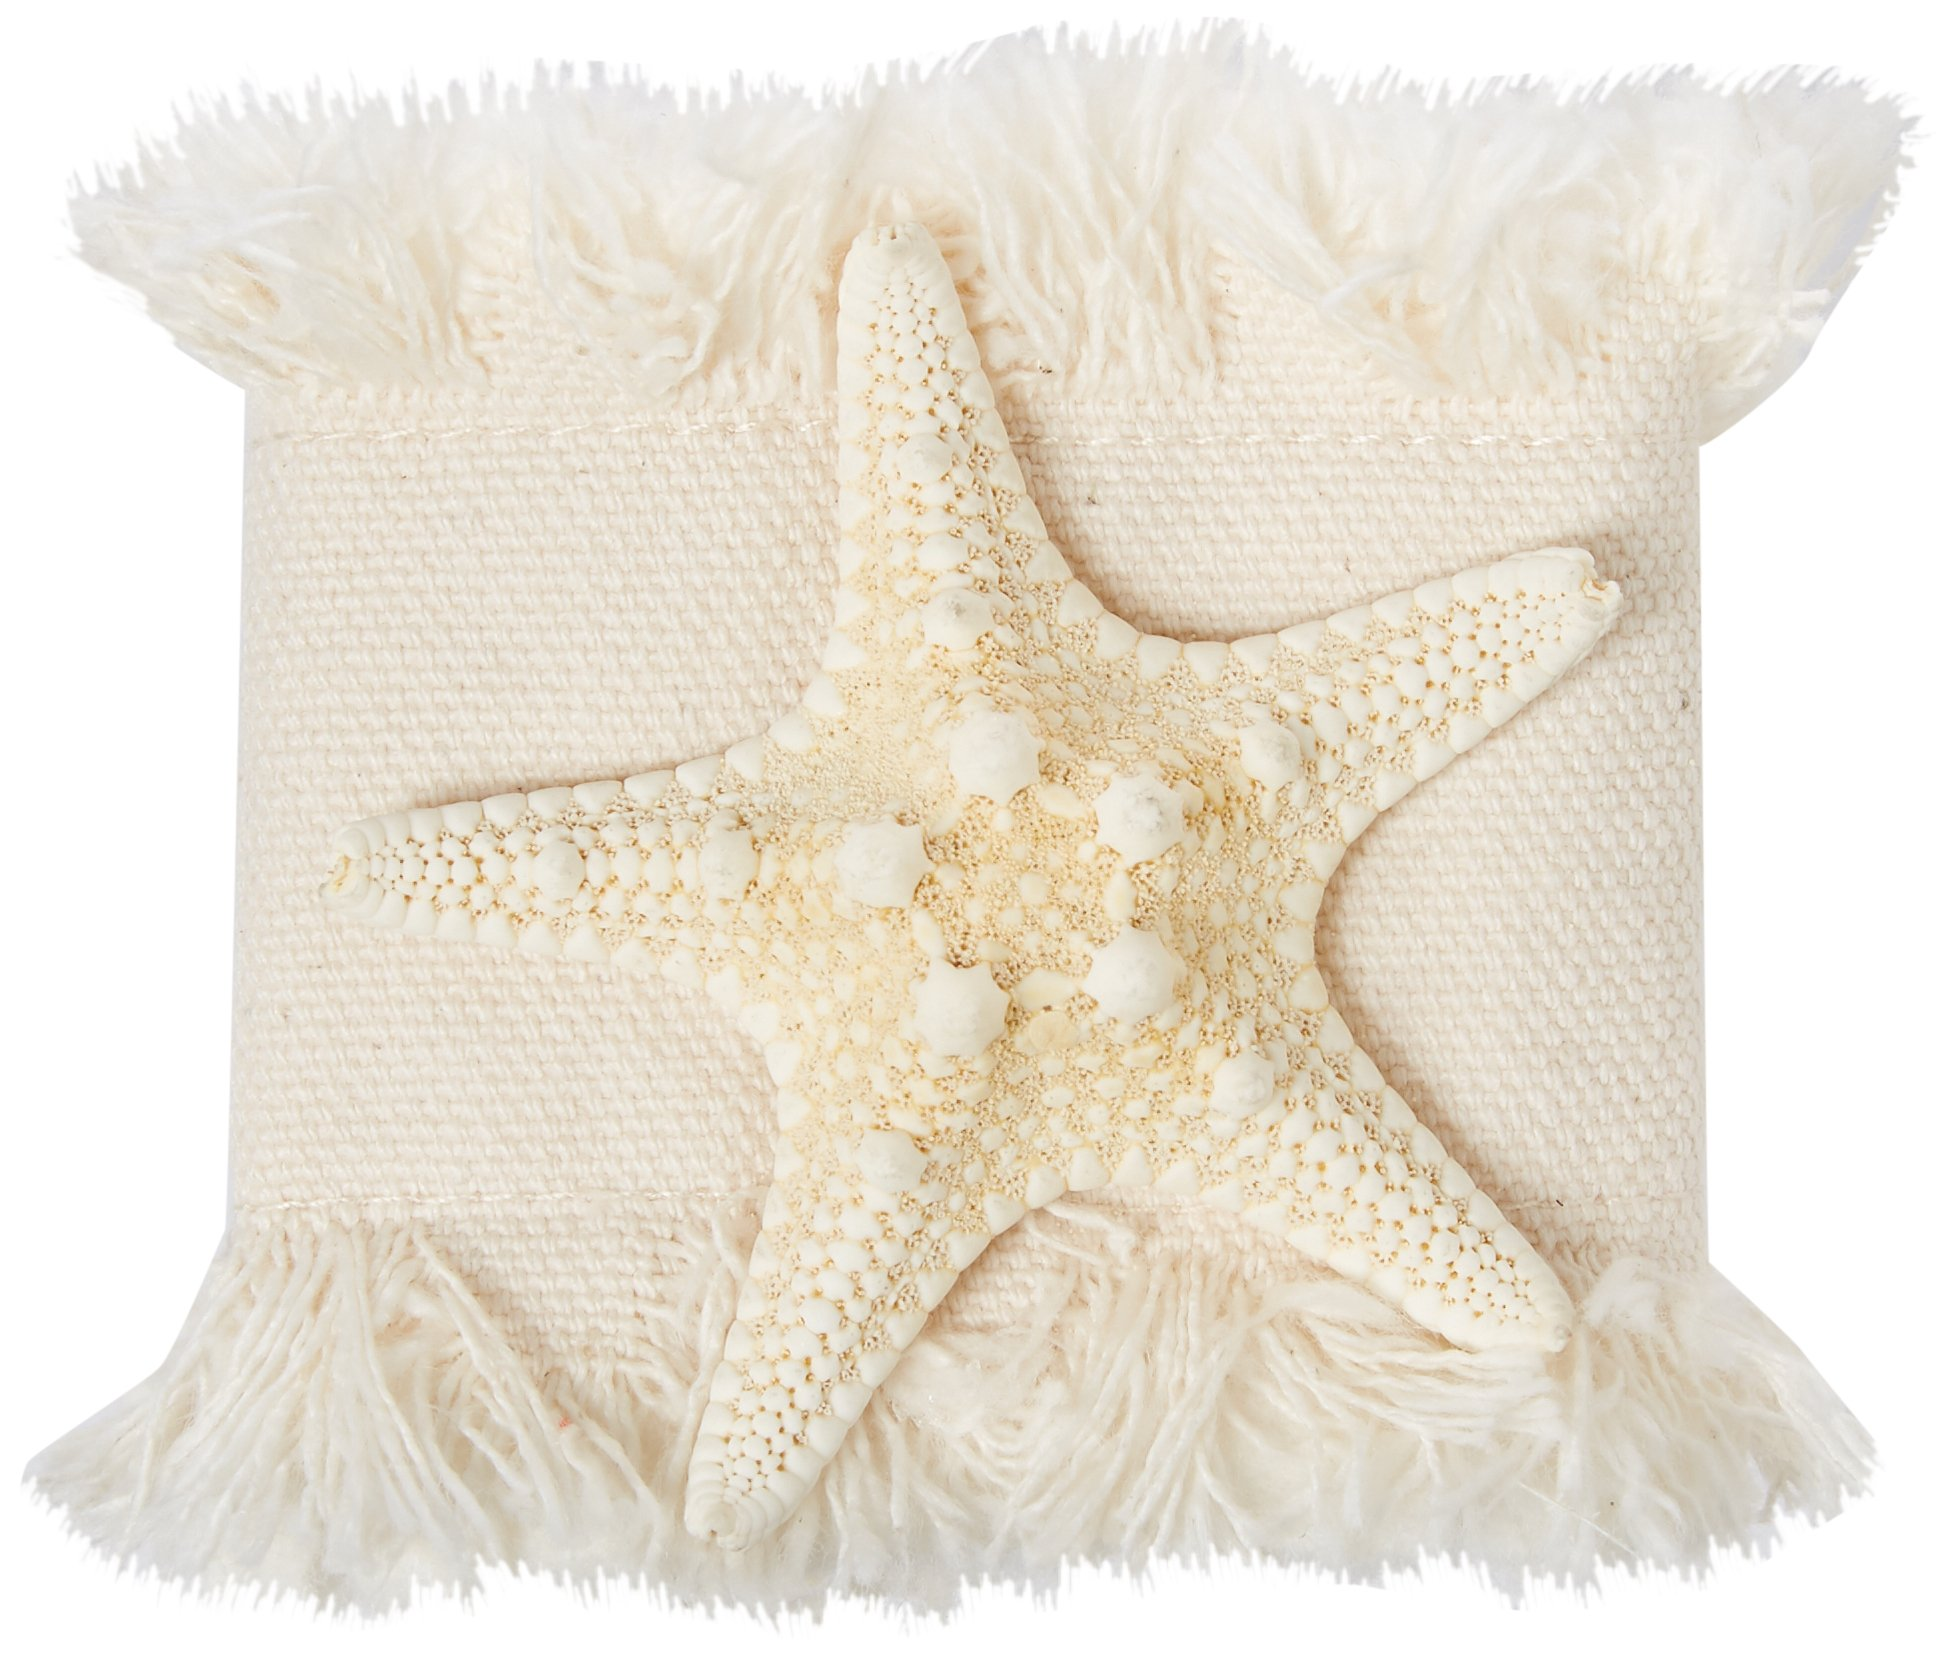 Beach Dining BNR-I-SF-01-8 Beach Dining - Napkin Ring, Natural Starfish (8 Pack), Ivory